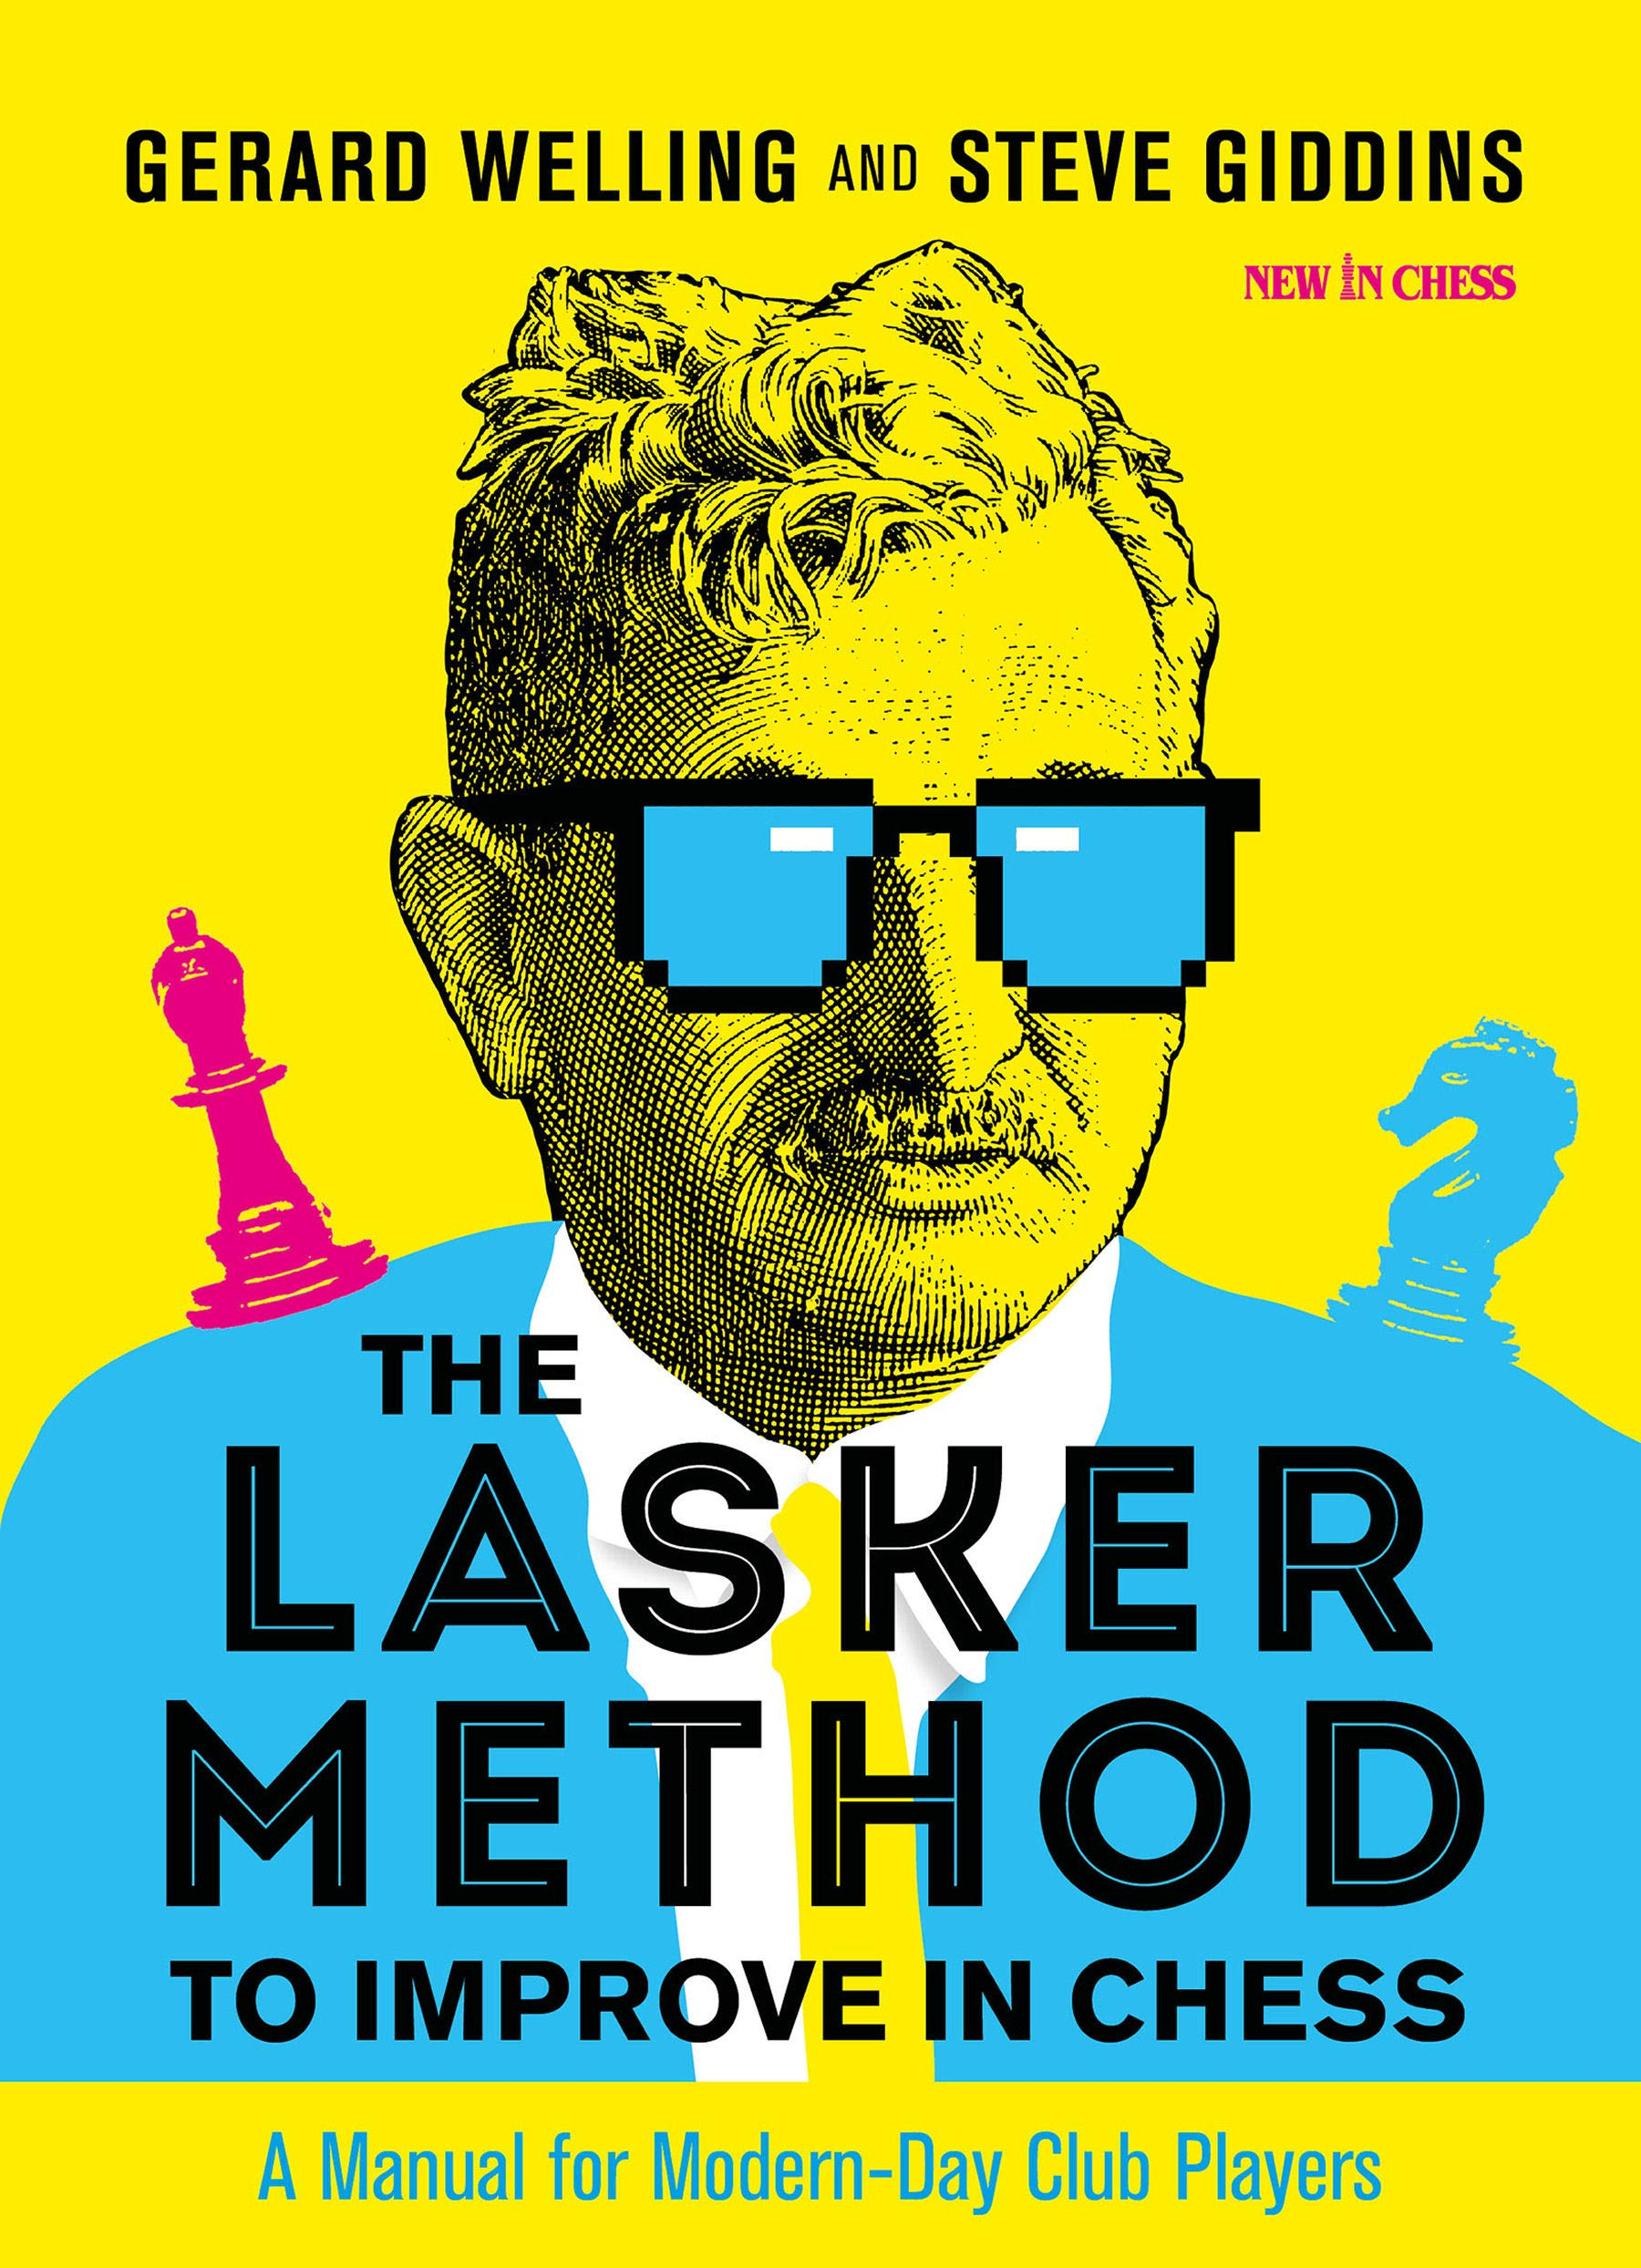 The Lasker Method to Improve in Chess, Gerard Welling and Steve Giddins, New in Chess, 2021, ISBN-13 : 978-9056919320